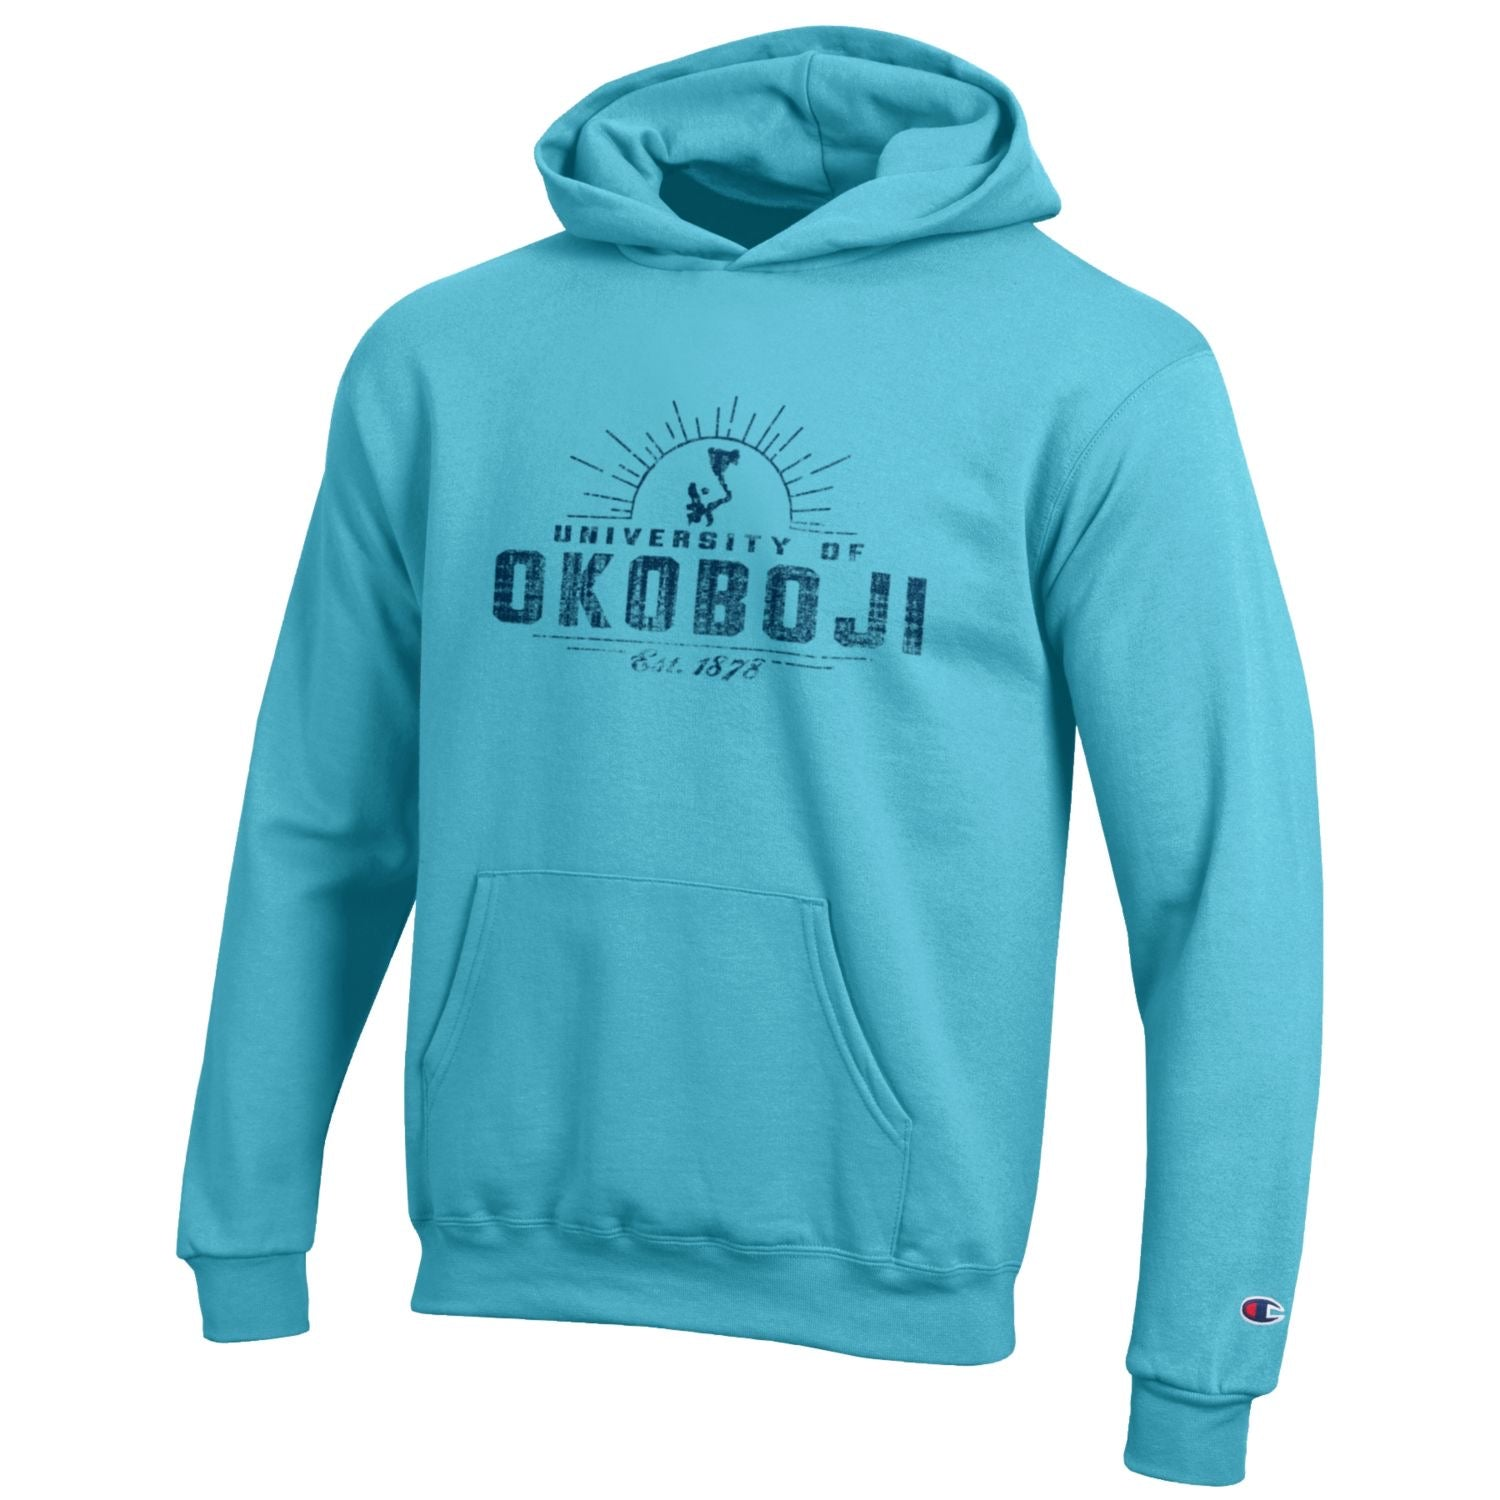 Kids University of Okoboji Campus Sun Hooded Sweatshirt- Aqua